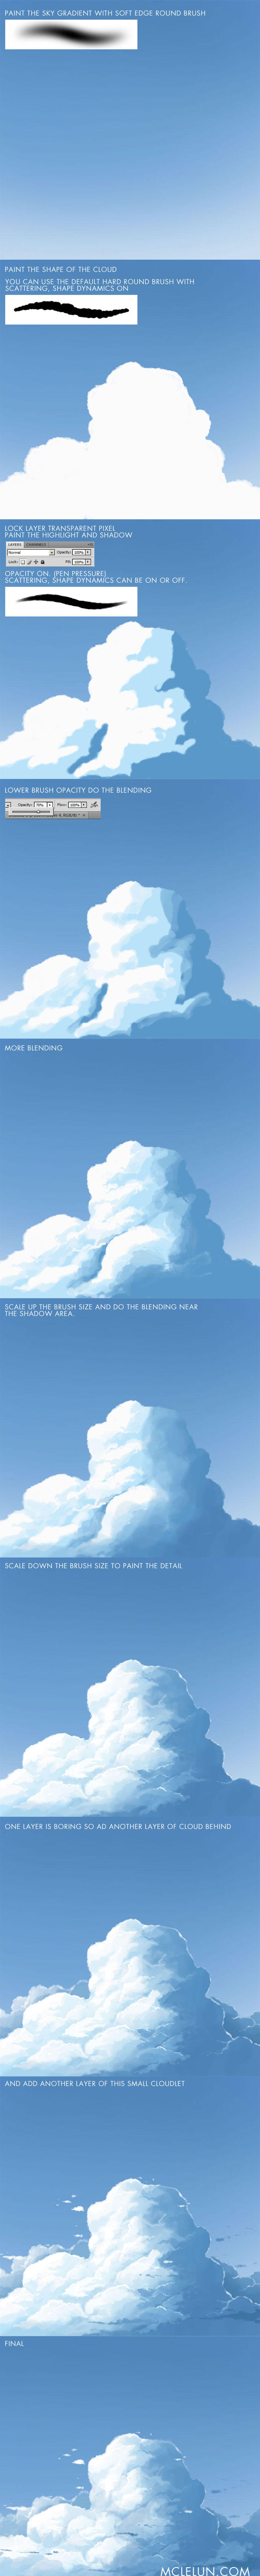 anime cumulus cloud tutorial